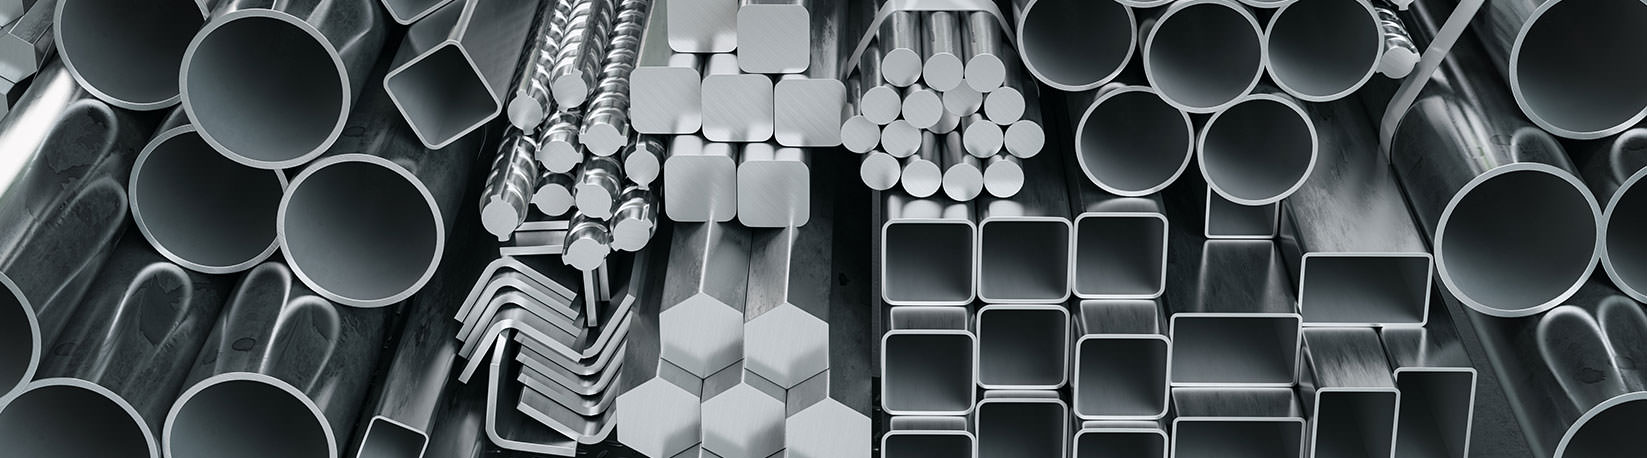 extrusion production